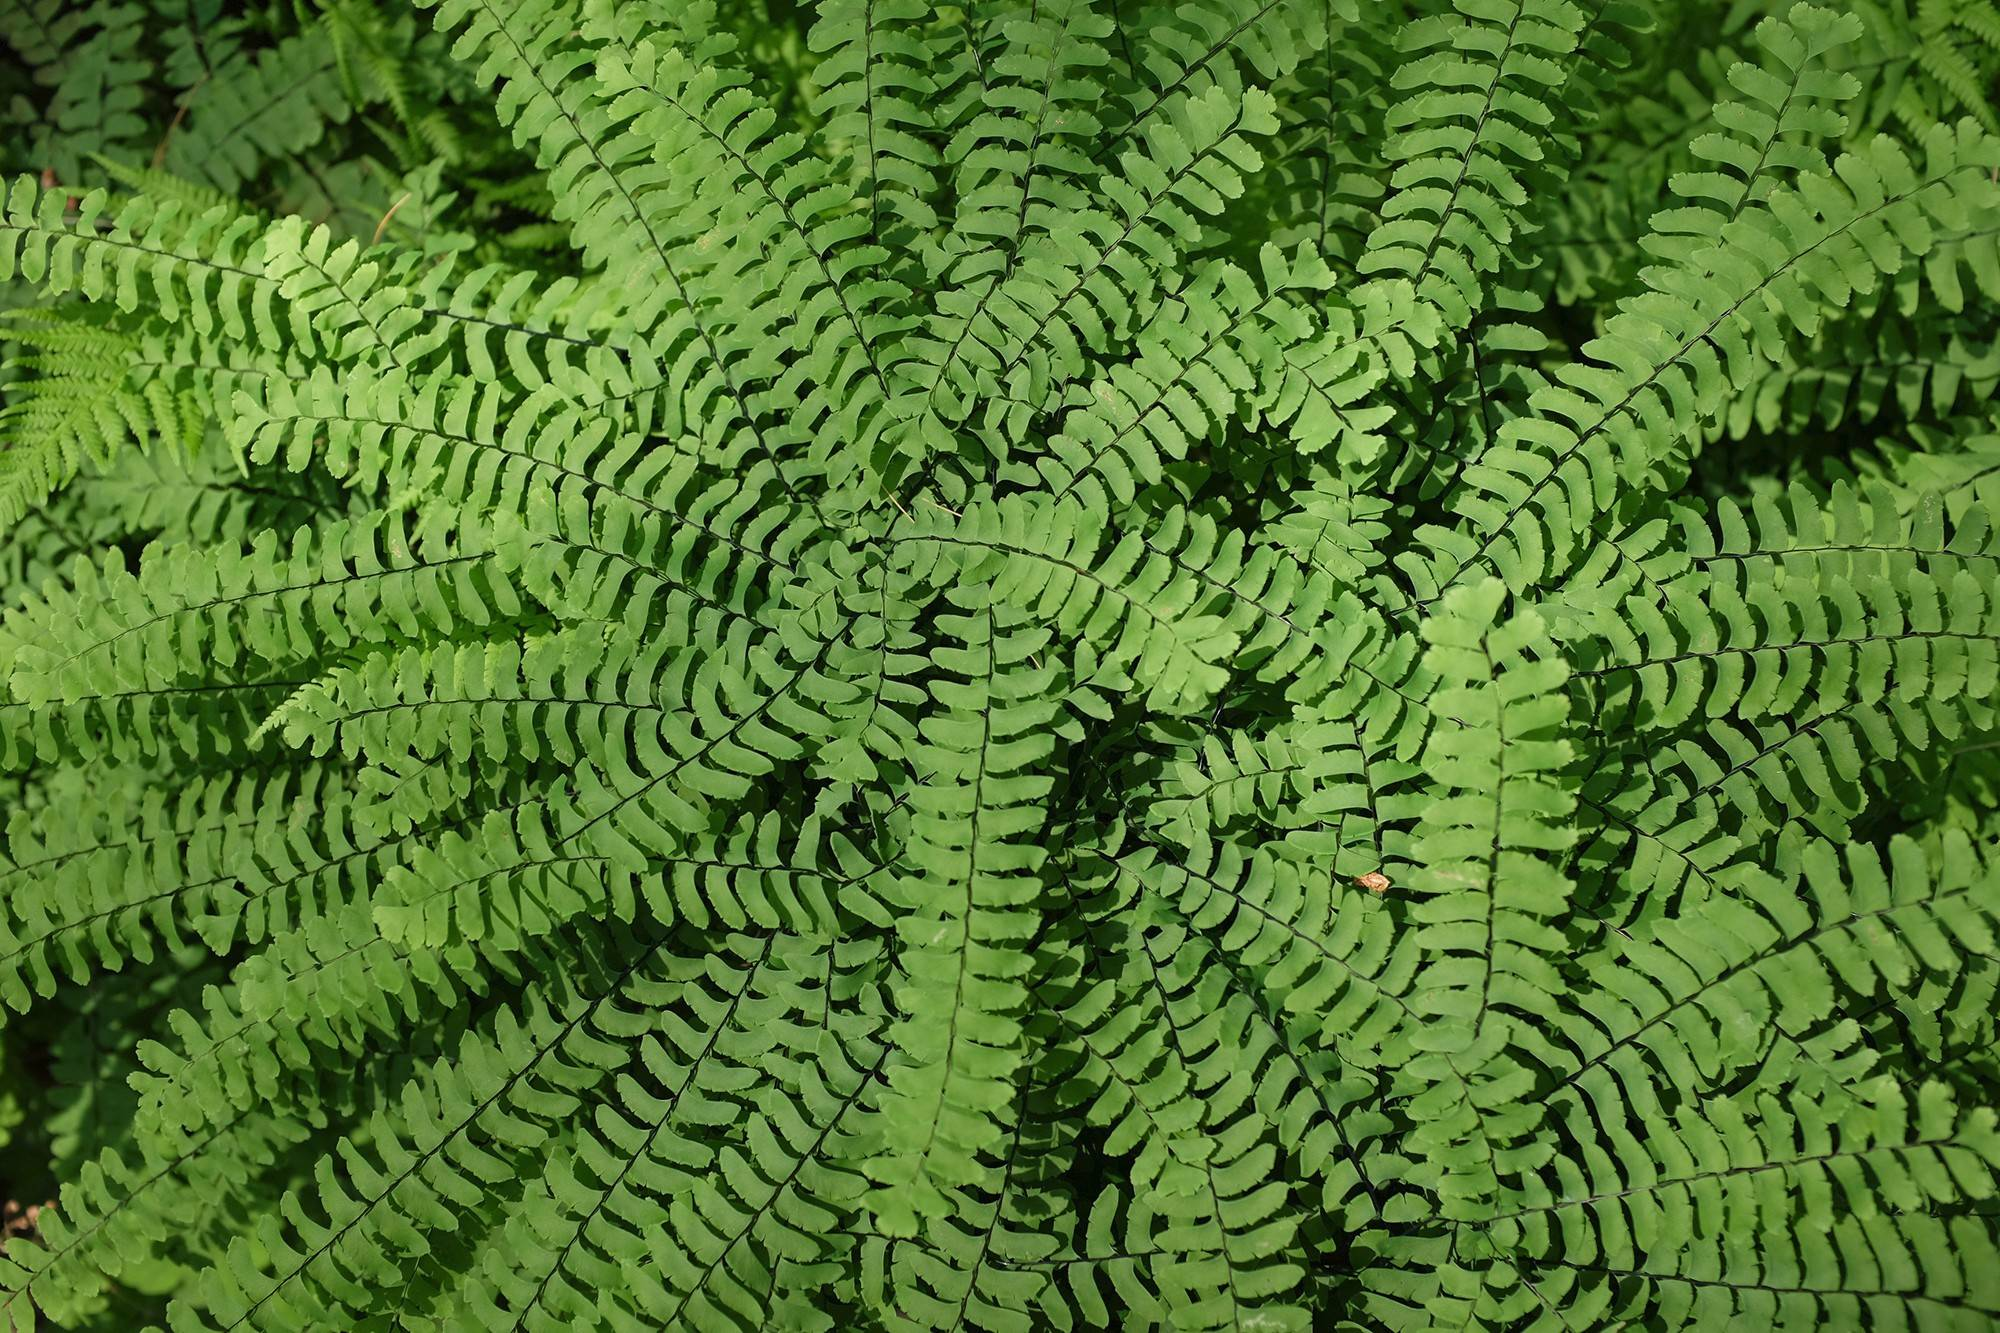 The foliar swirls of a New York maidenhair fern are among the most beguiling leaf patterns of all plants in the garden.